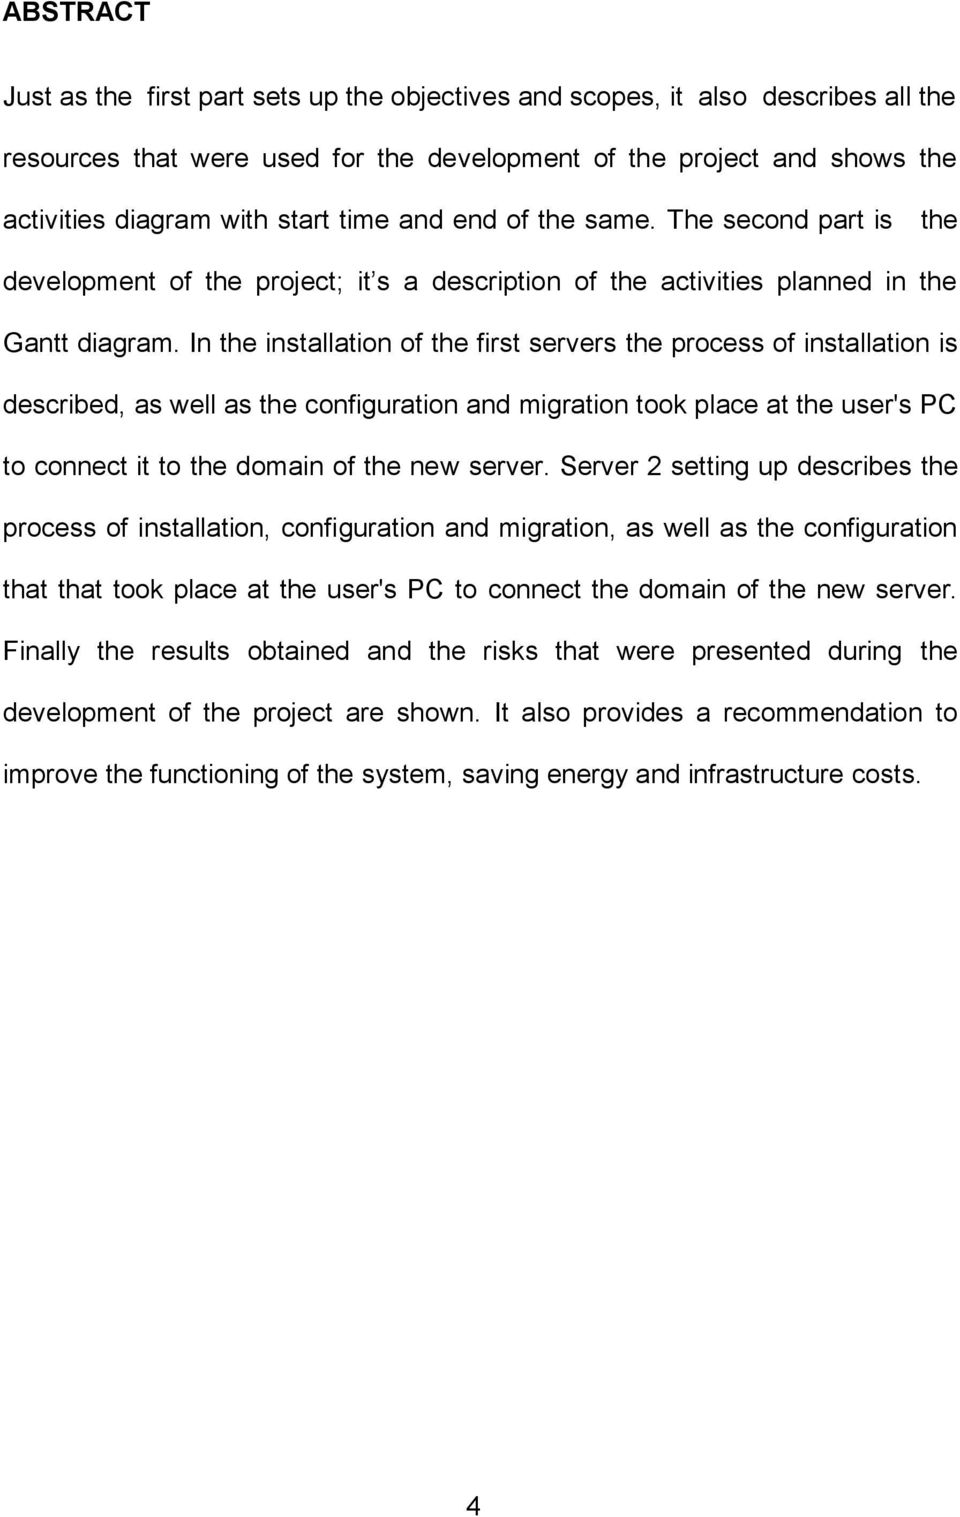 In the installation of the first servers the process of installation is described, as well as the configuration and migration took place at the user's PC to connect it to the domain of the new server.